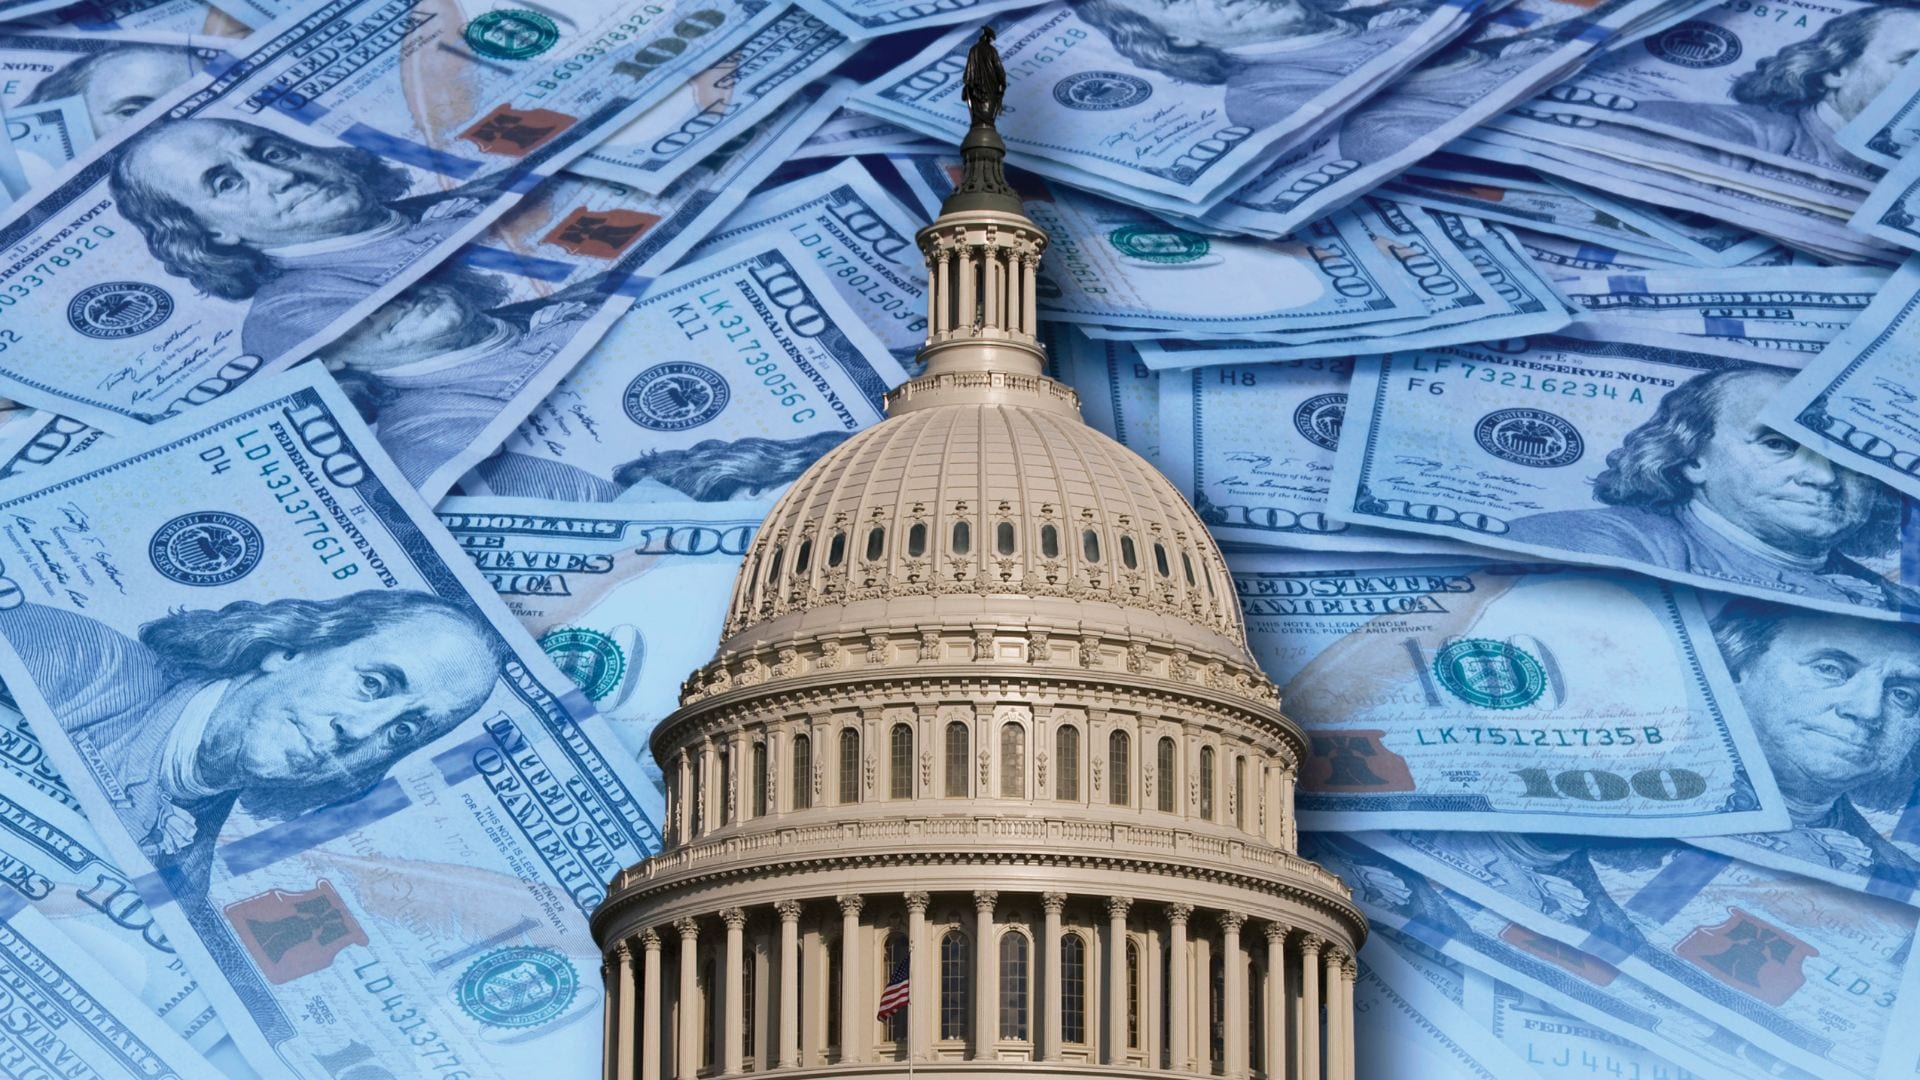 The US Capitol dome set again 100 dollar bills